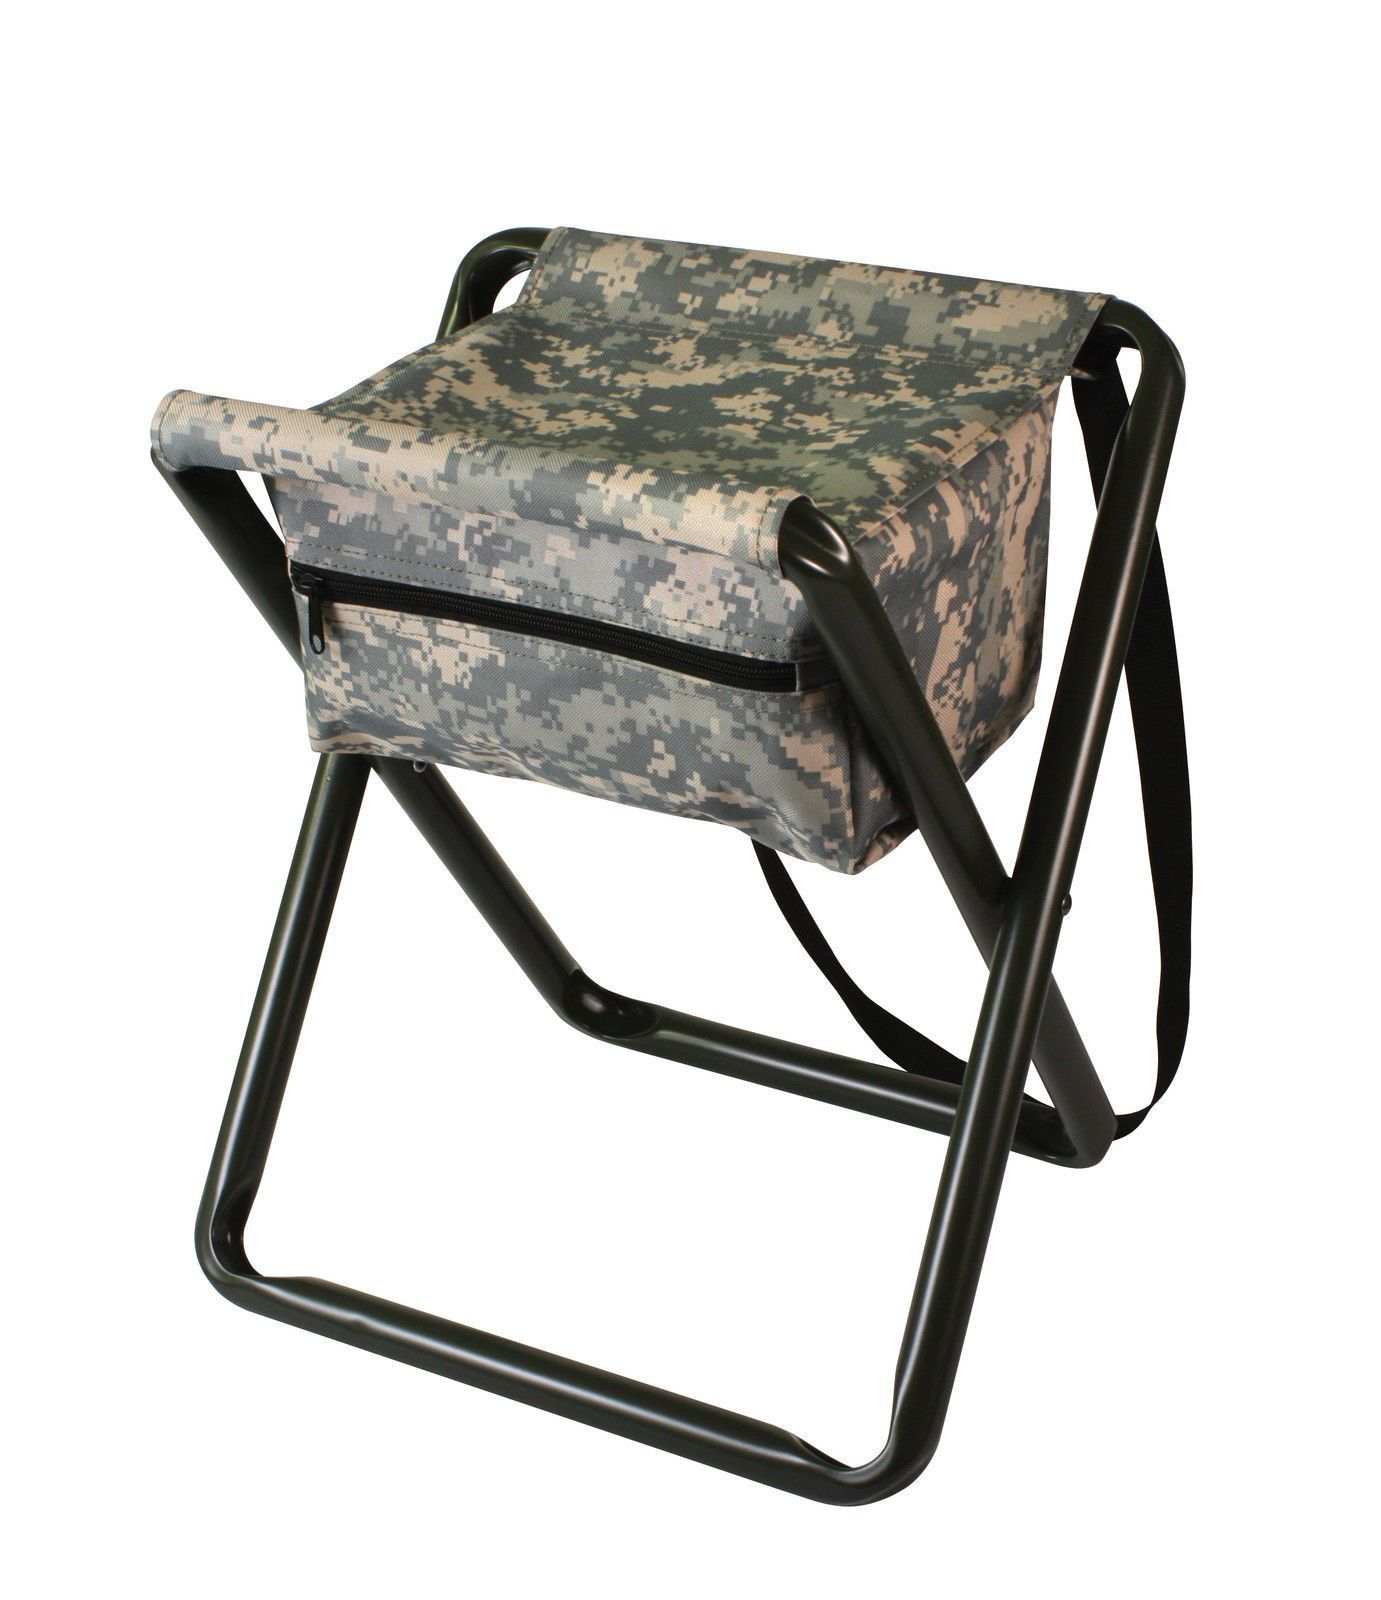 Swell Deluxe Camo Folding Camp Stool W Pouch Woodland Acu Pdpeps Interior Chair Design Pdpepsorg